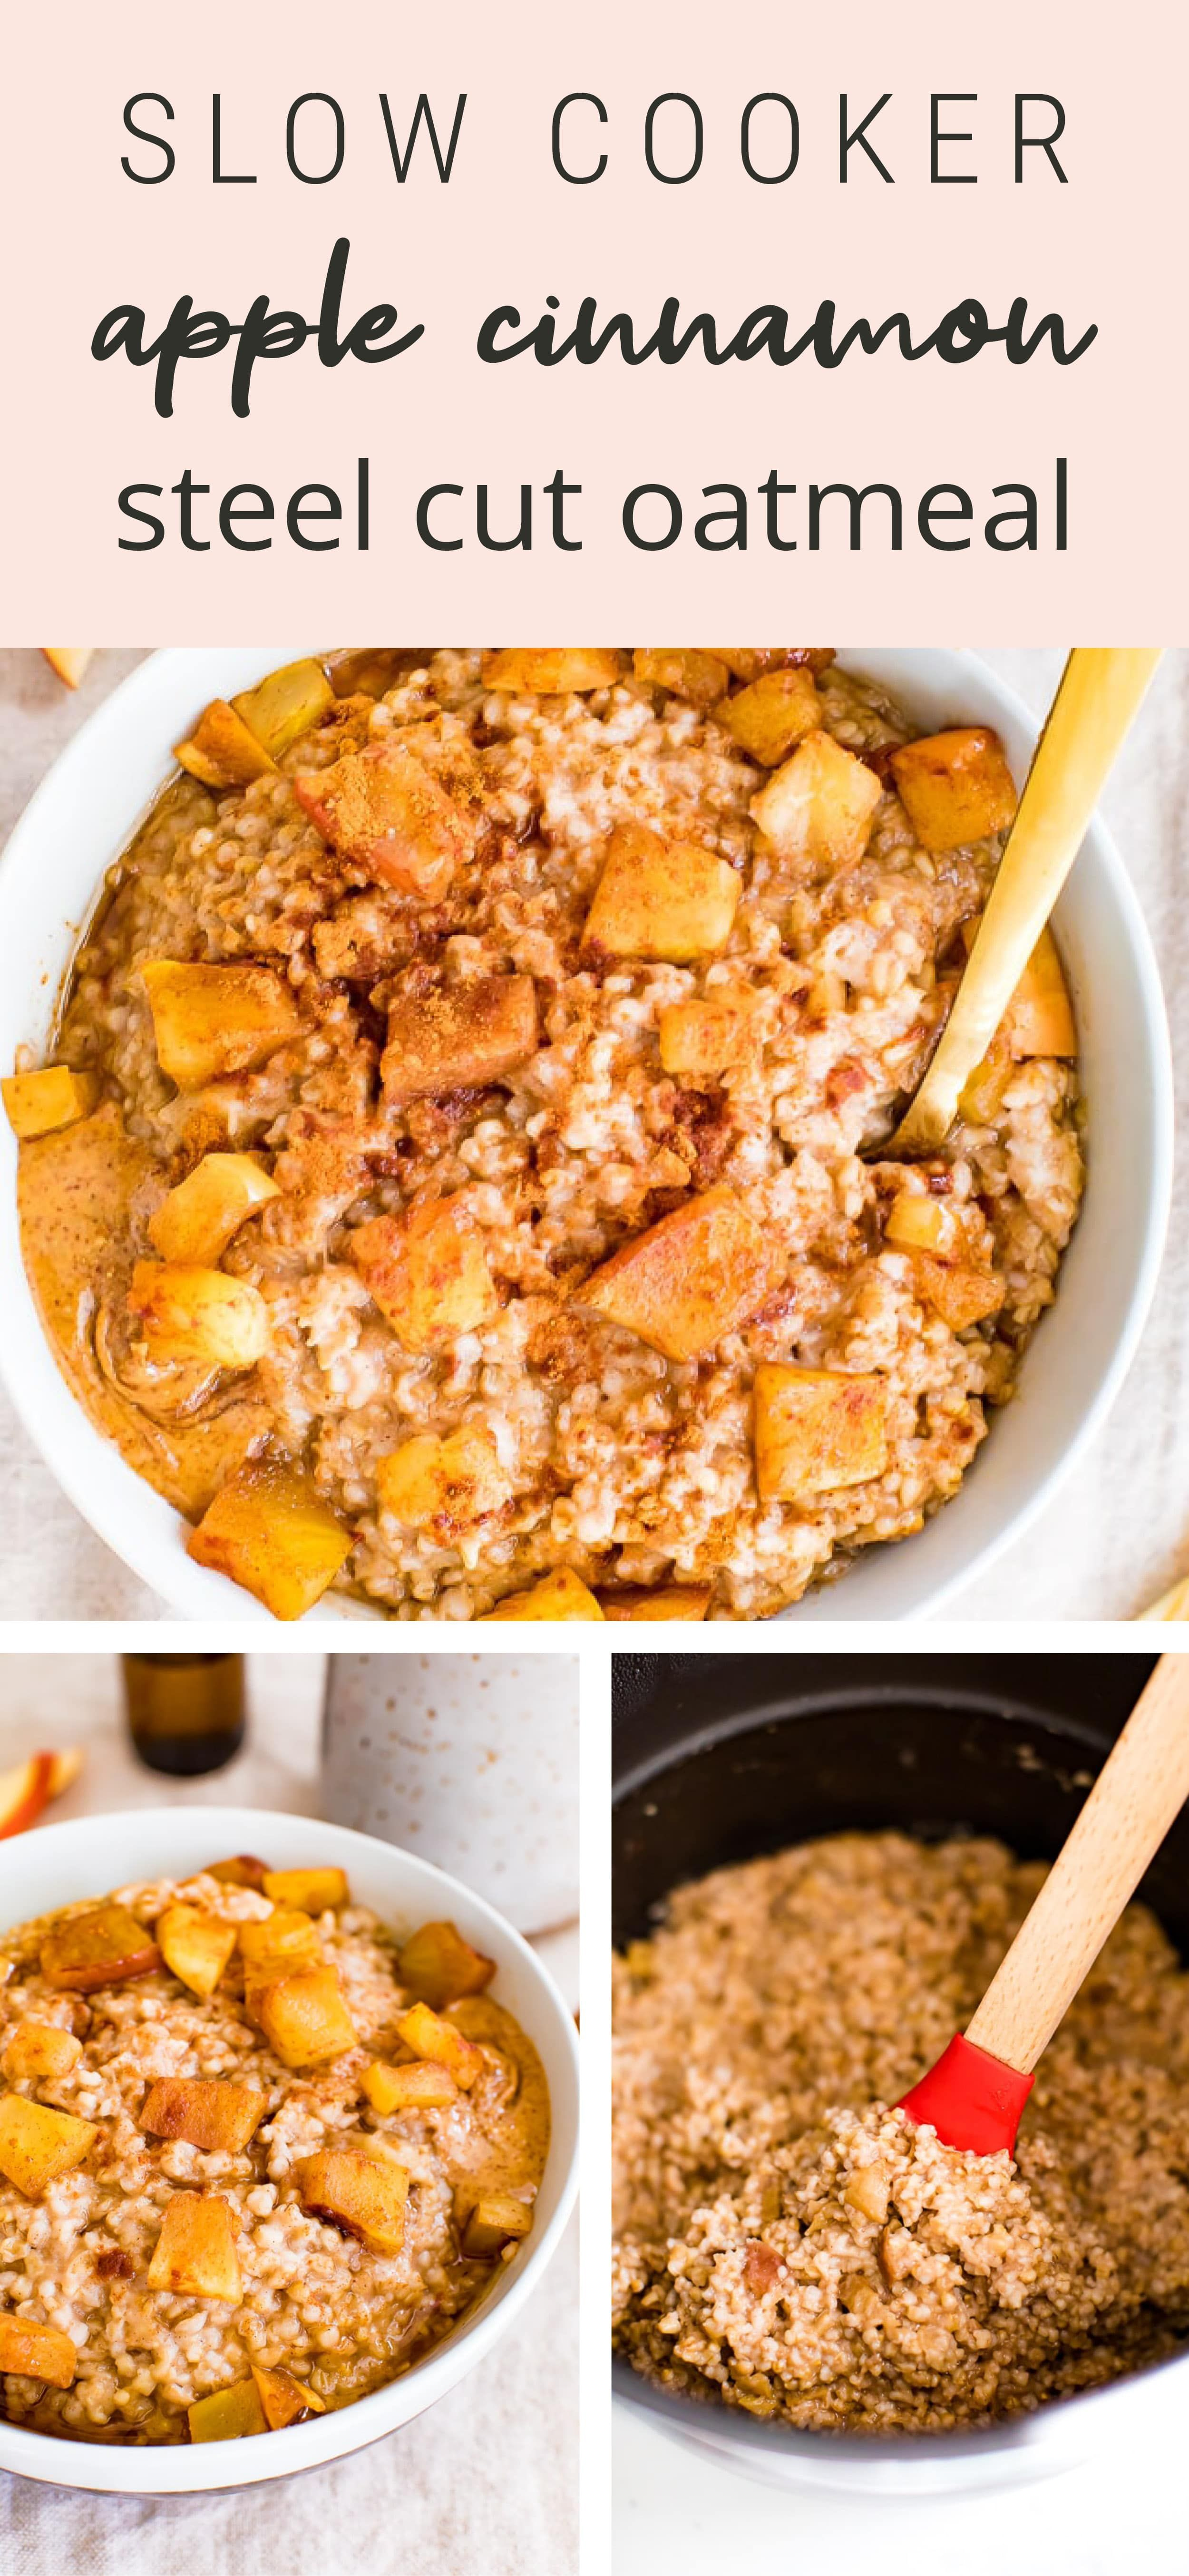 Apple cinnamon oatmeal made with steel cut oats and filled with soft apple chunks. You can make this apple cinnamon oatmeal in your slow cooker or an instant pot! #instantpot #slowcooker #crockpot #steelcutoats #oatmeal #apple #cinnamon #mealprep #breakfast